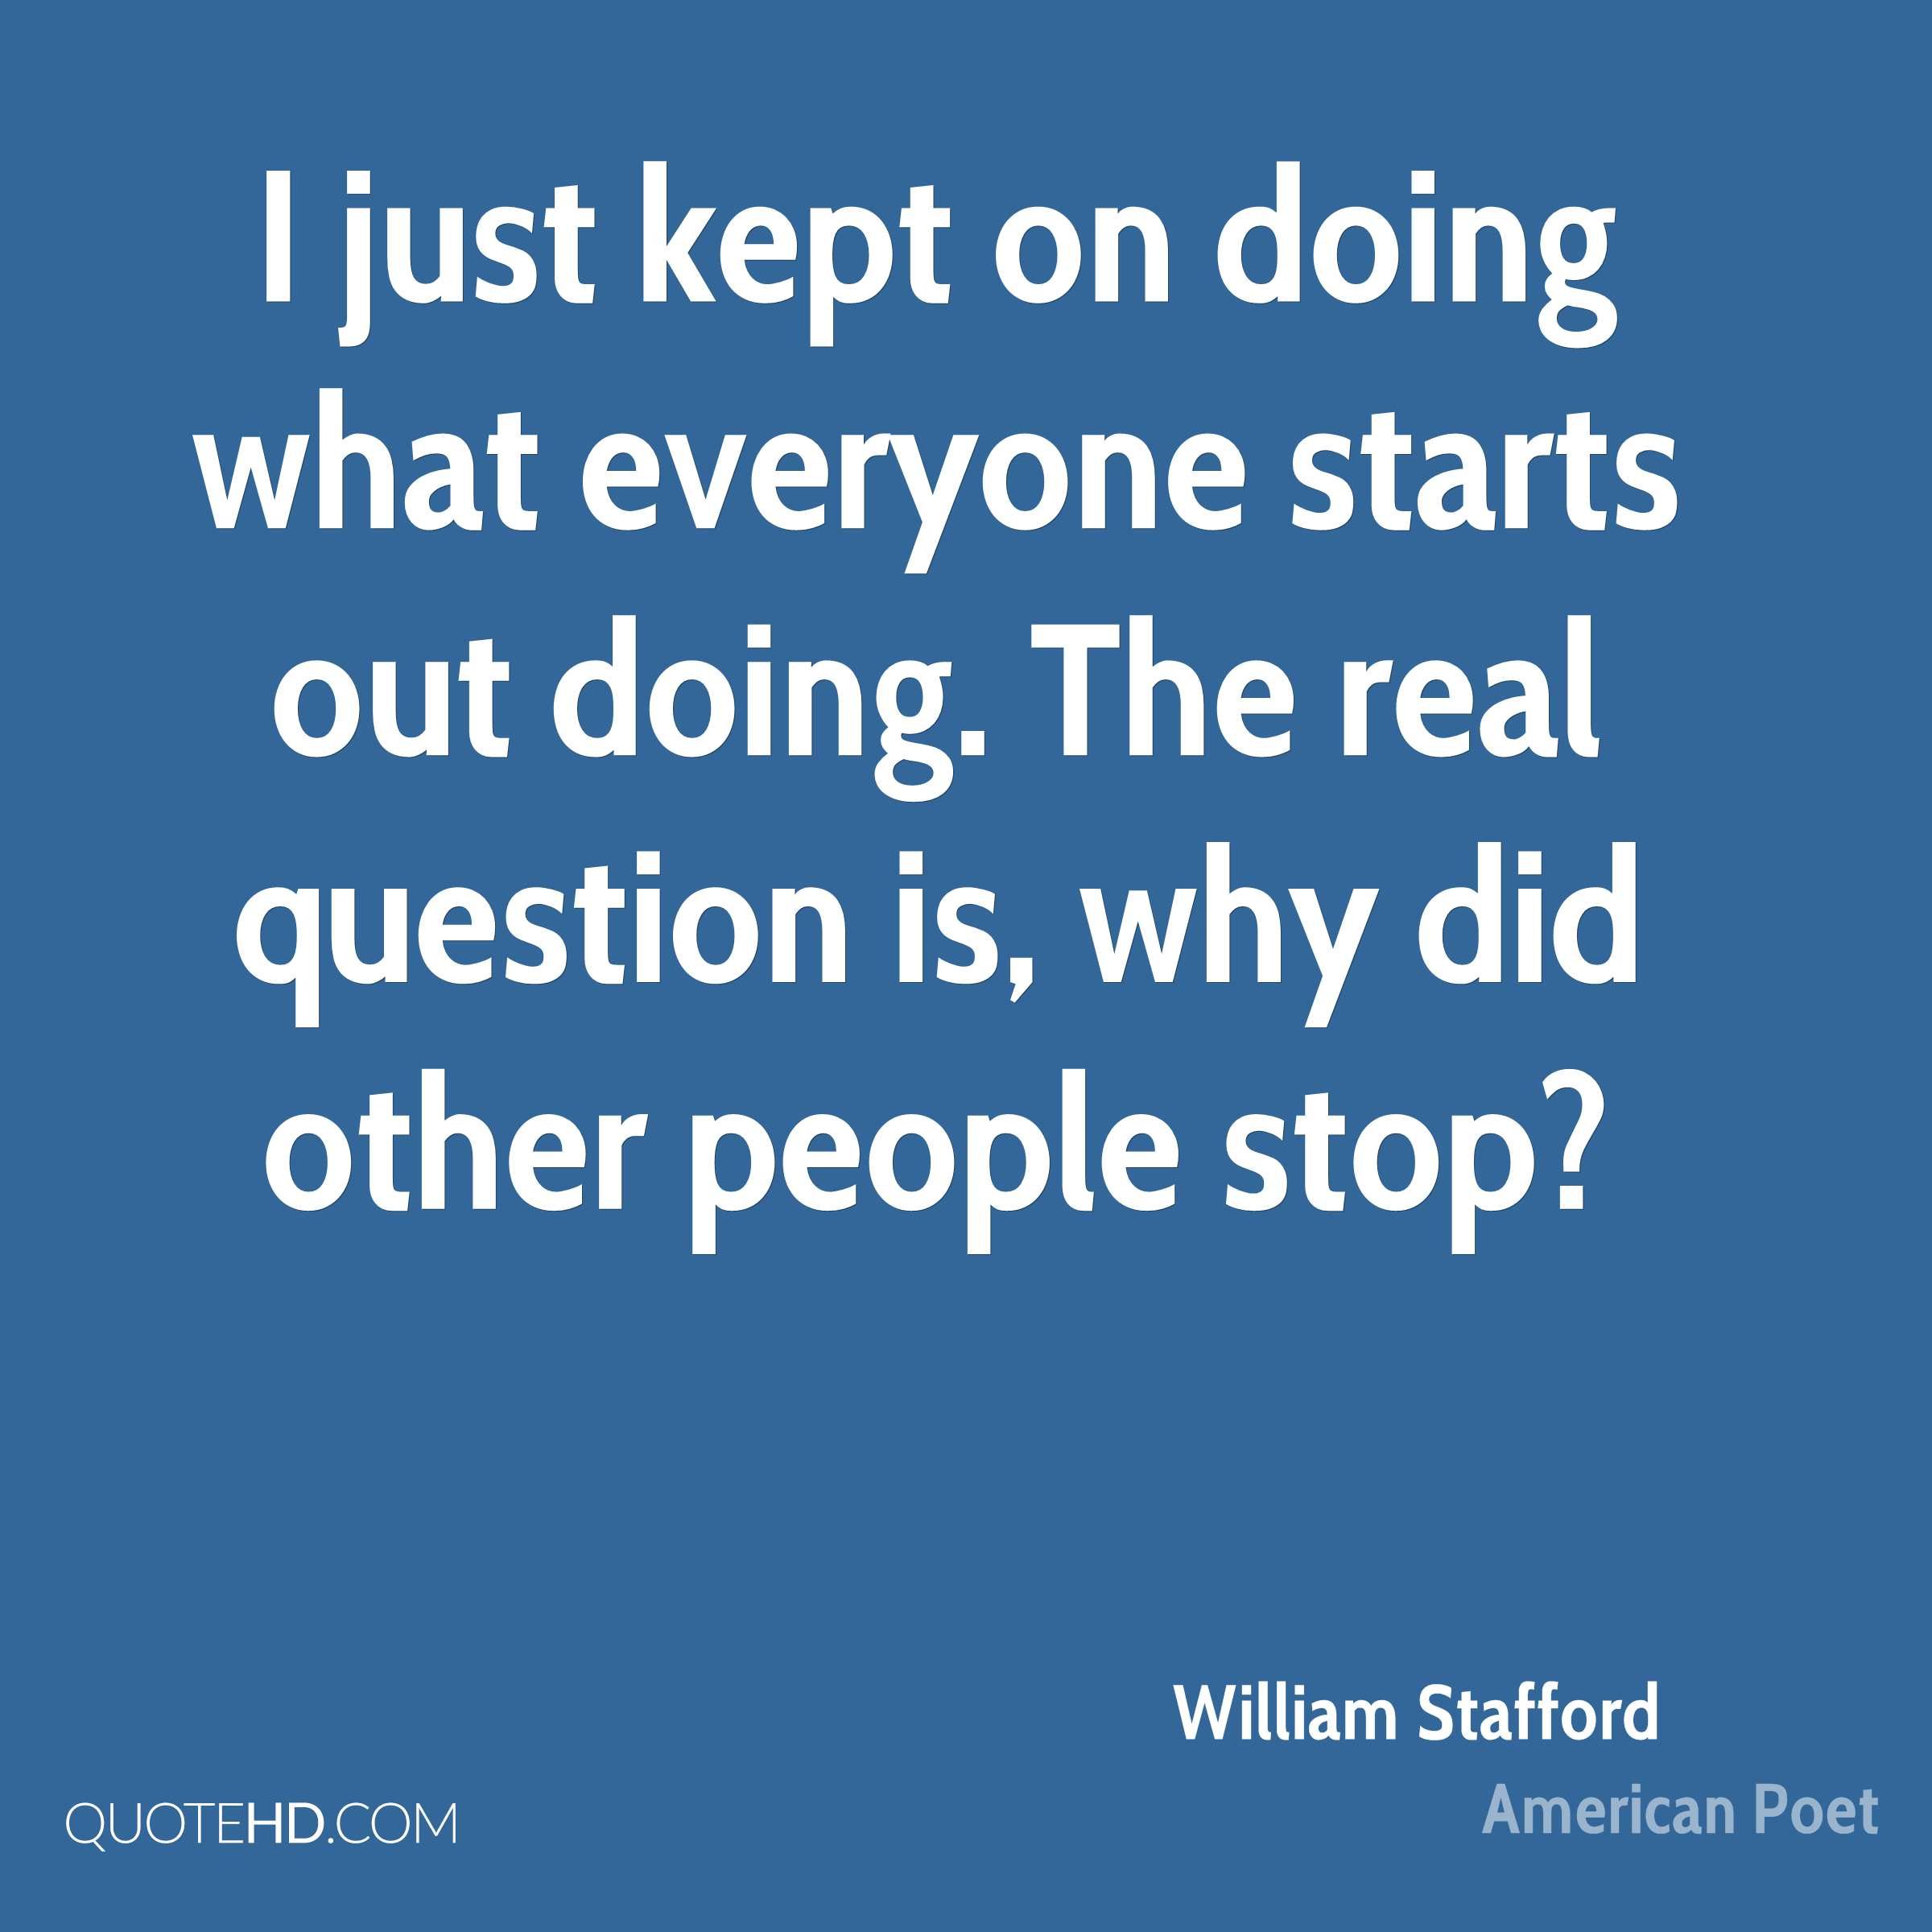 I just kept on doing what everyone starts out doing. The real question is, why did other people stop?